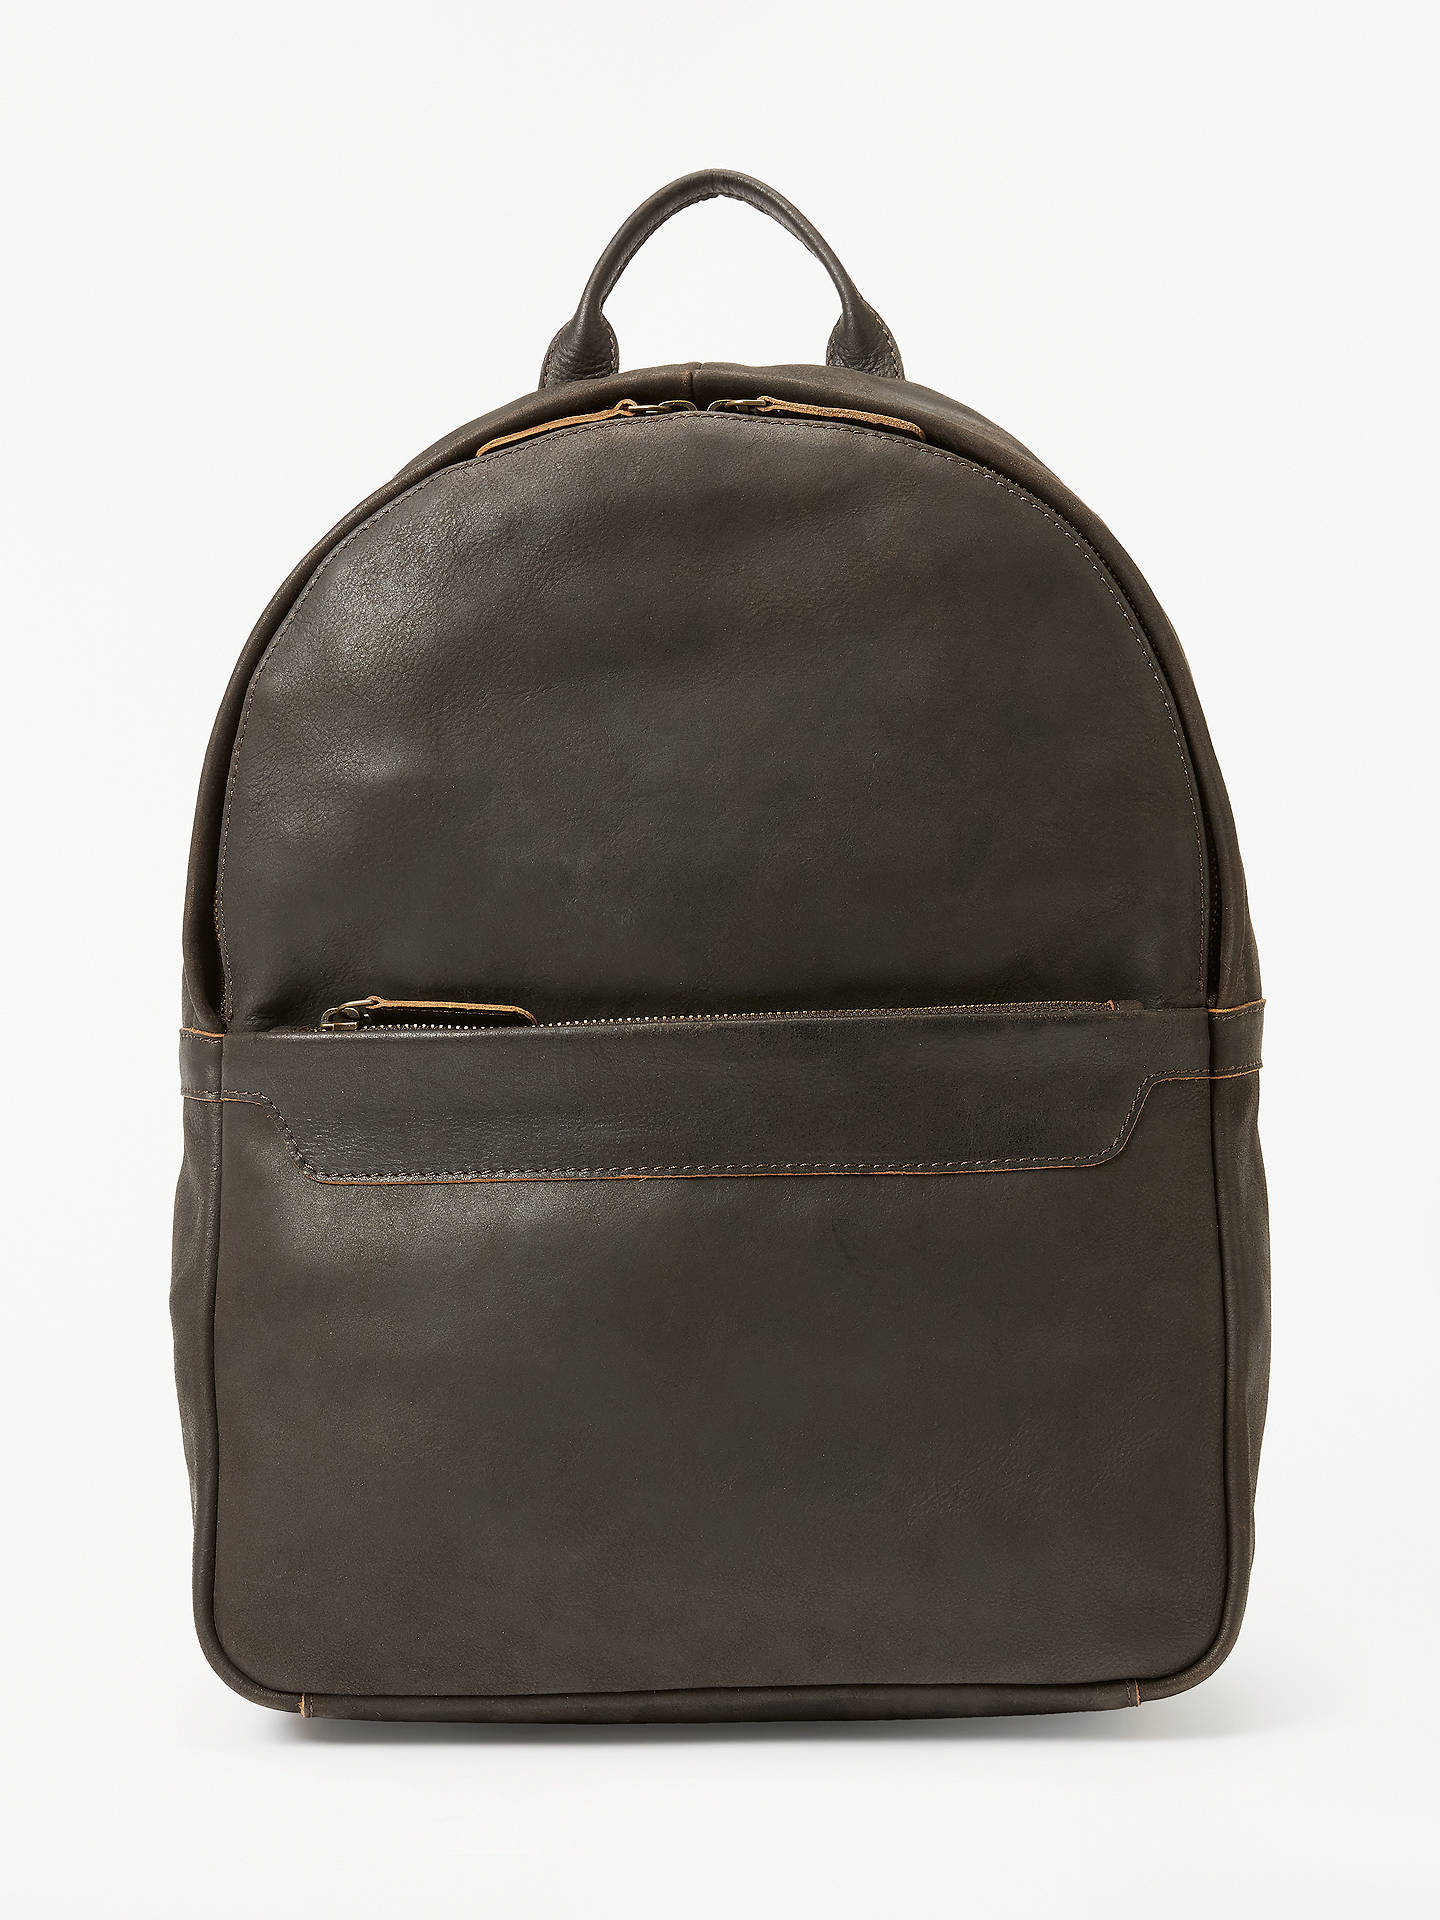 Buy John Lewis & Partners Toronto Leather Backpack, Brown Online at johnlewis.com